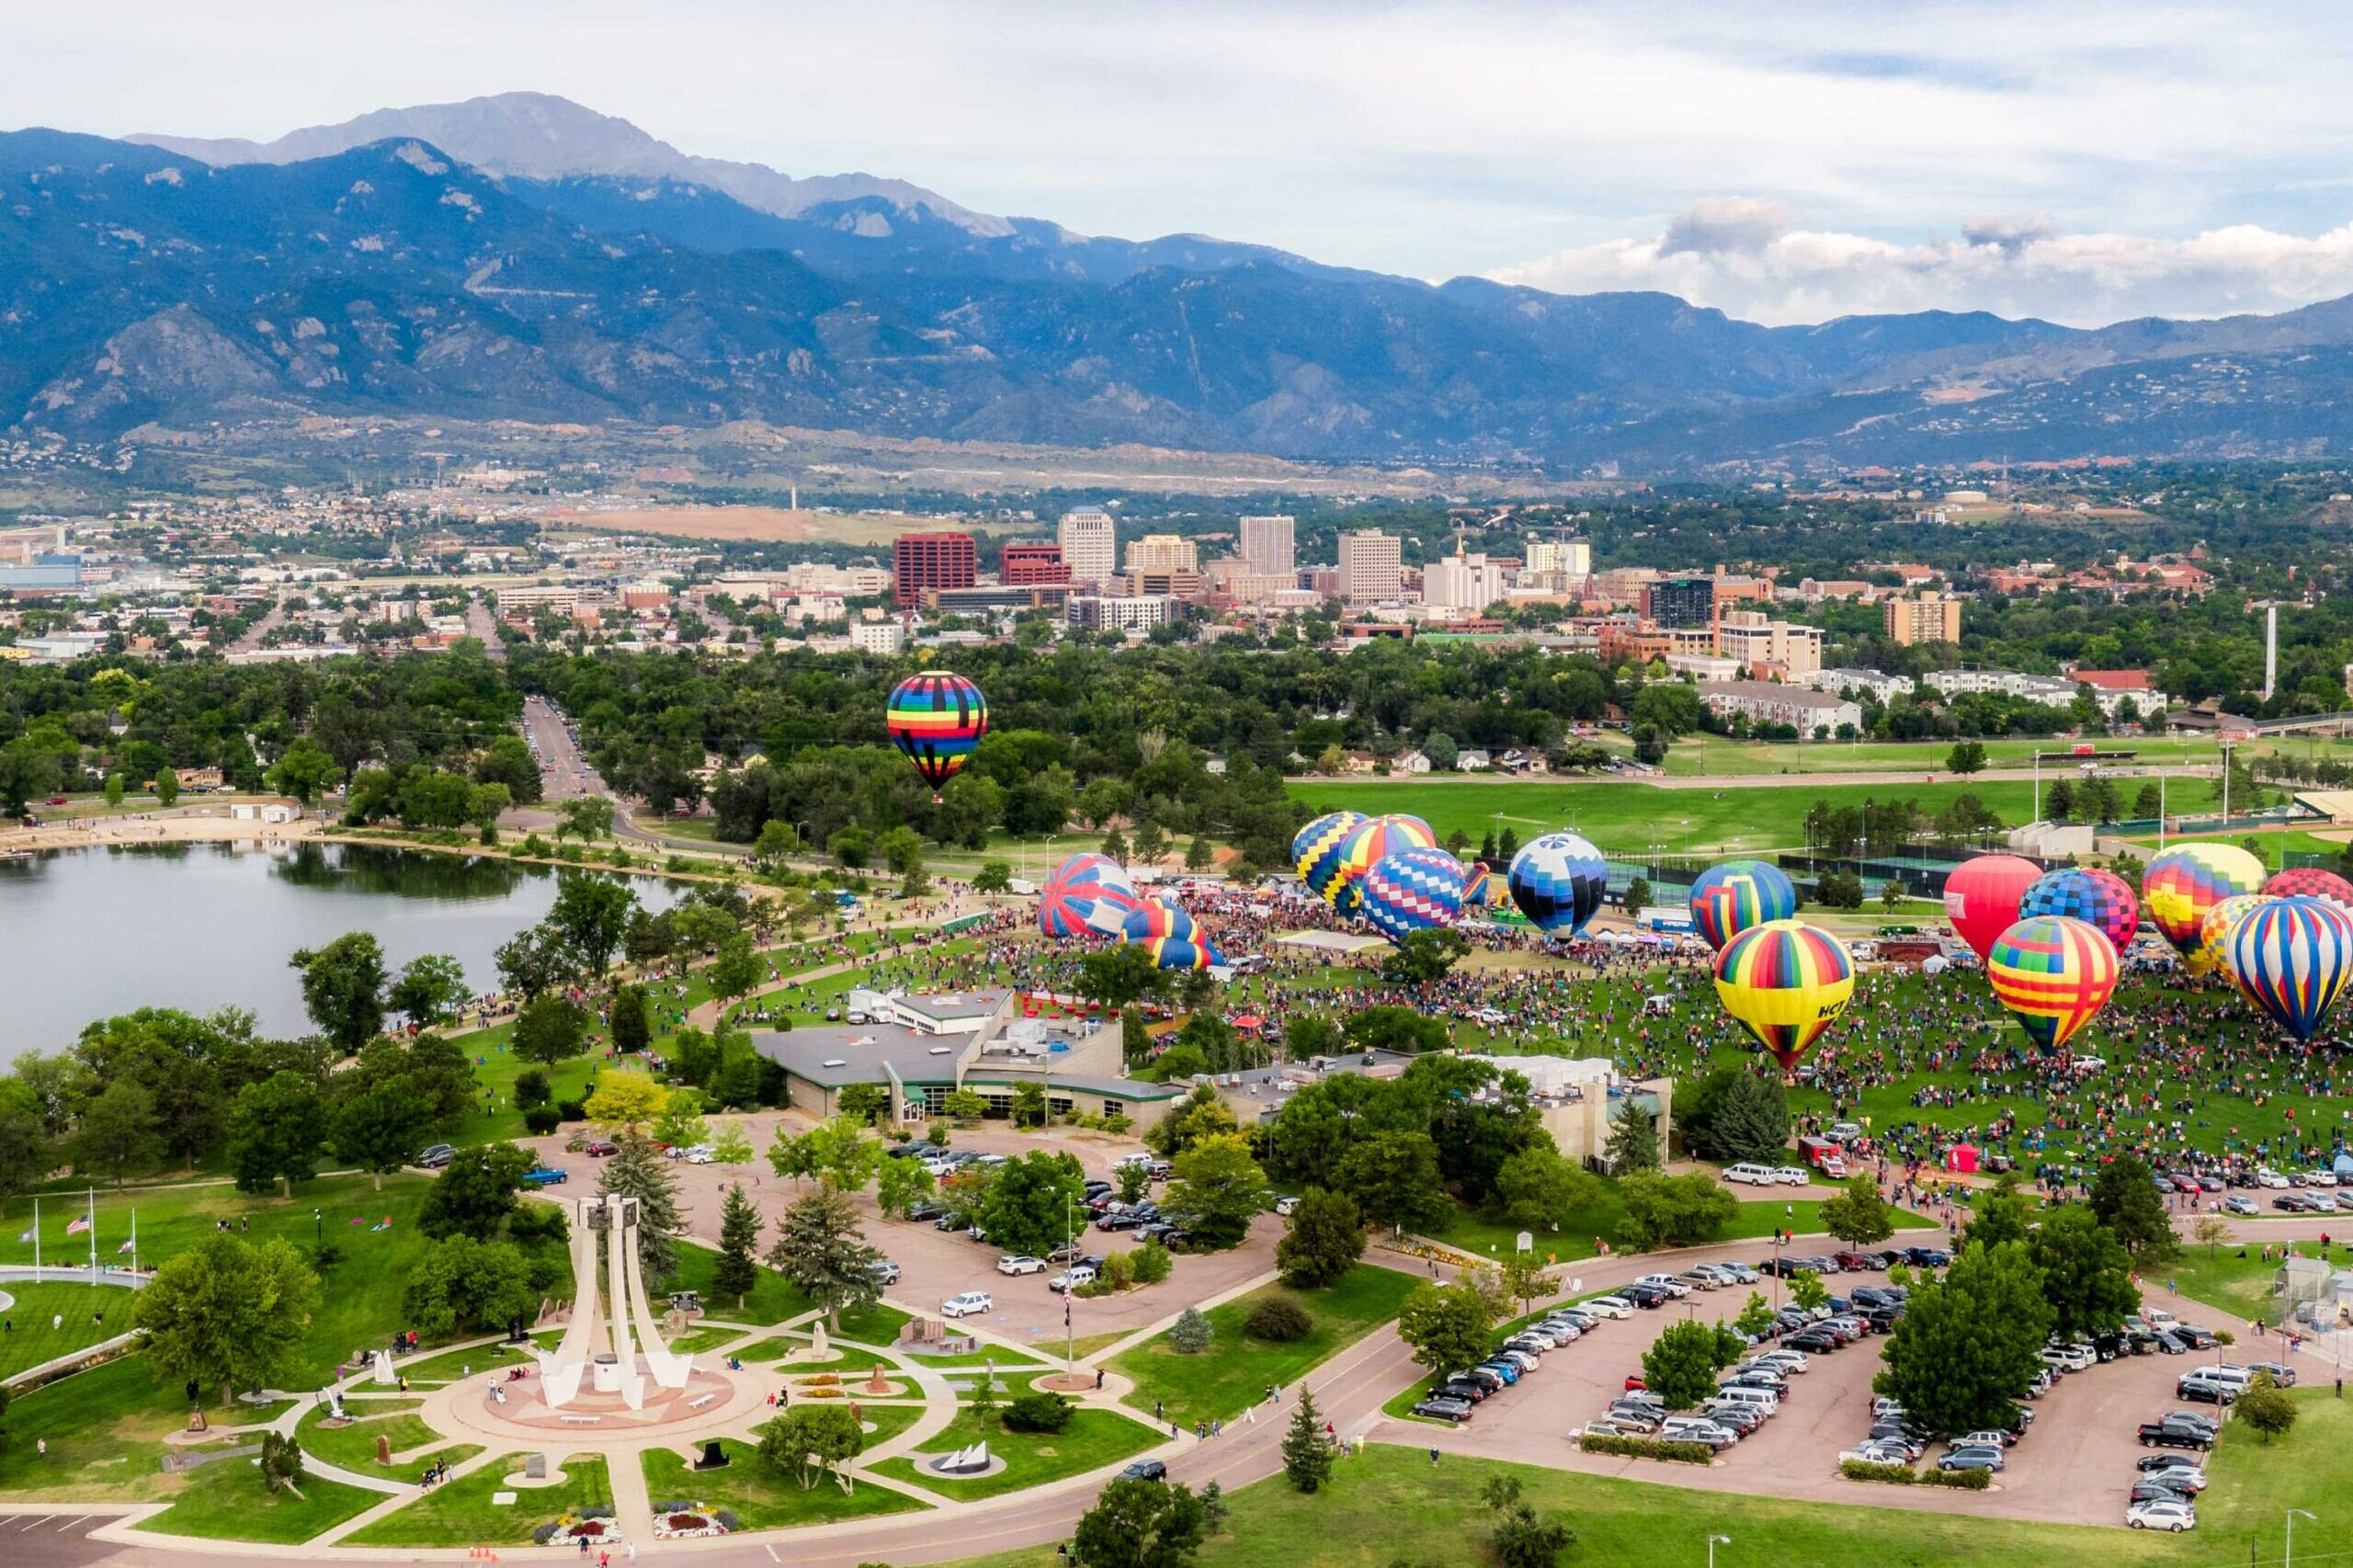 Development in downtown Colorado Springs has been a focus for the planning department.